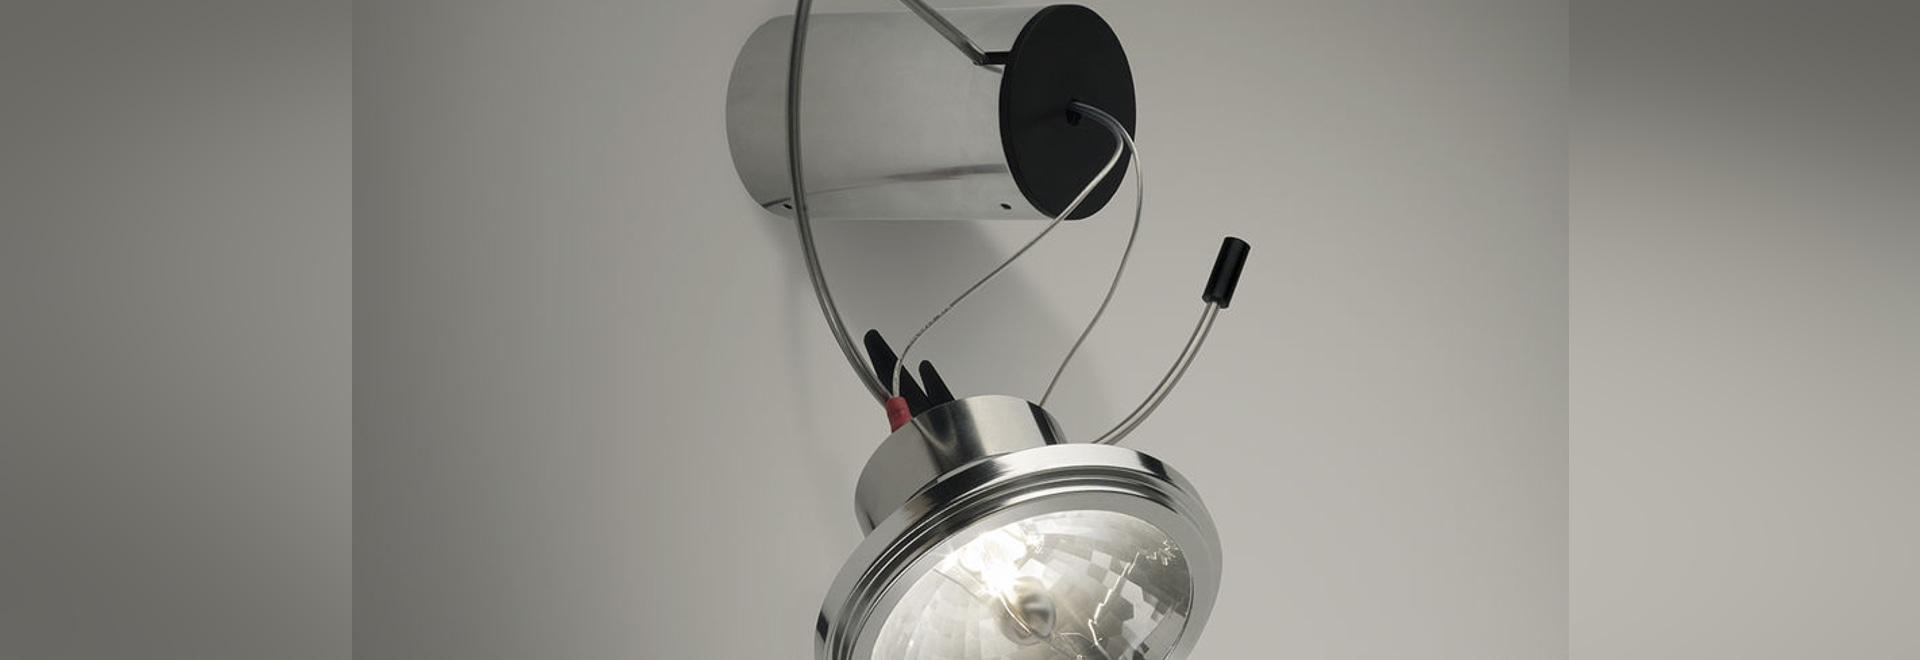 NEW: wall-mounted spotlight by Buck d.o.o.